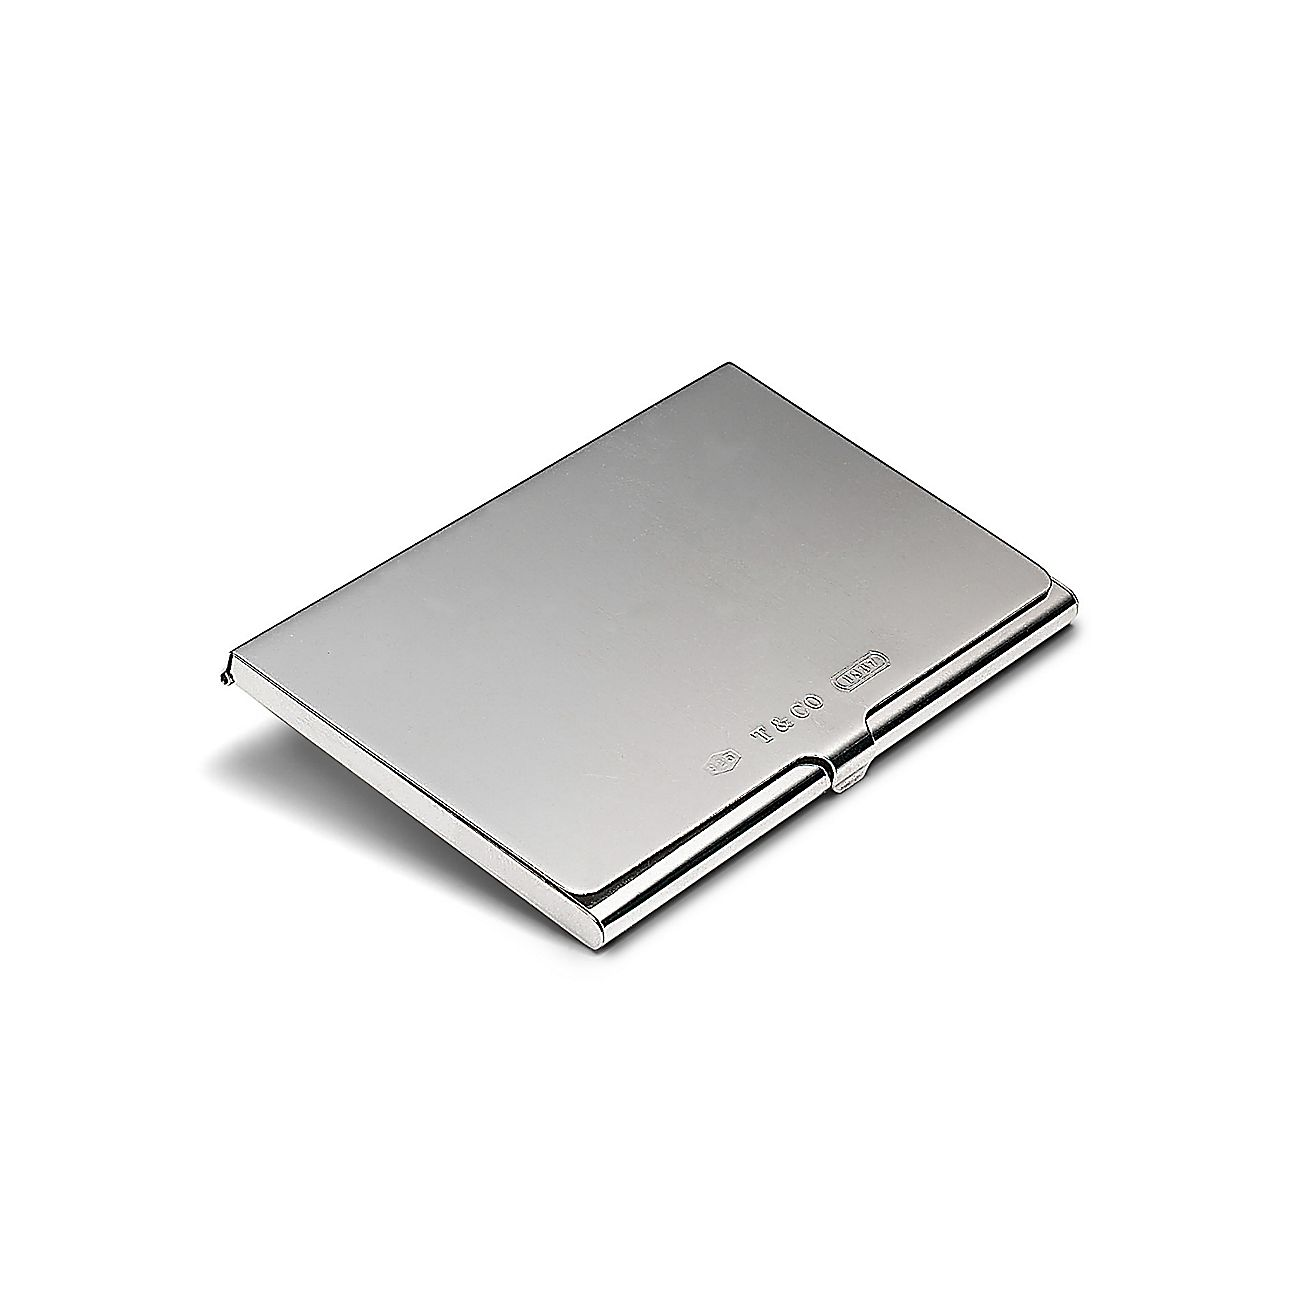 Tiffany 1837r business card case in sterling silver for Business cards holder case